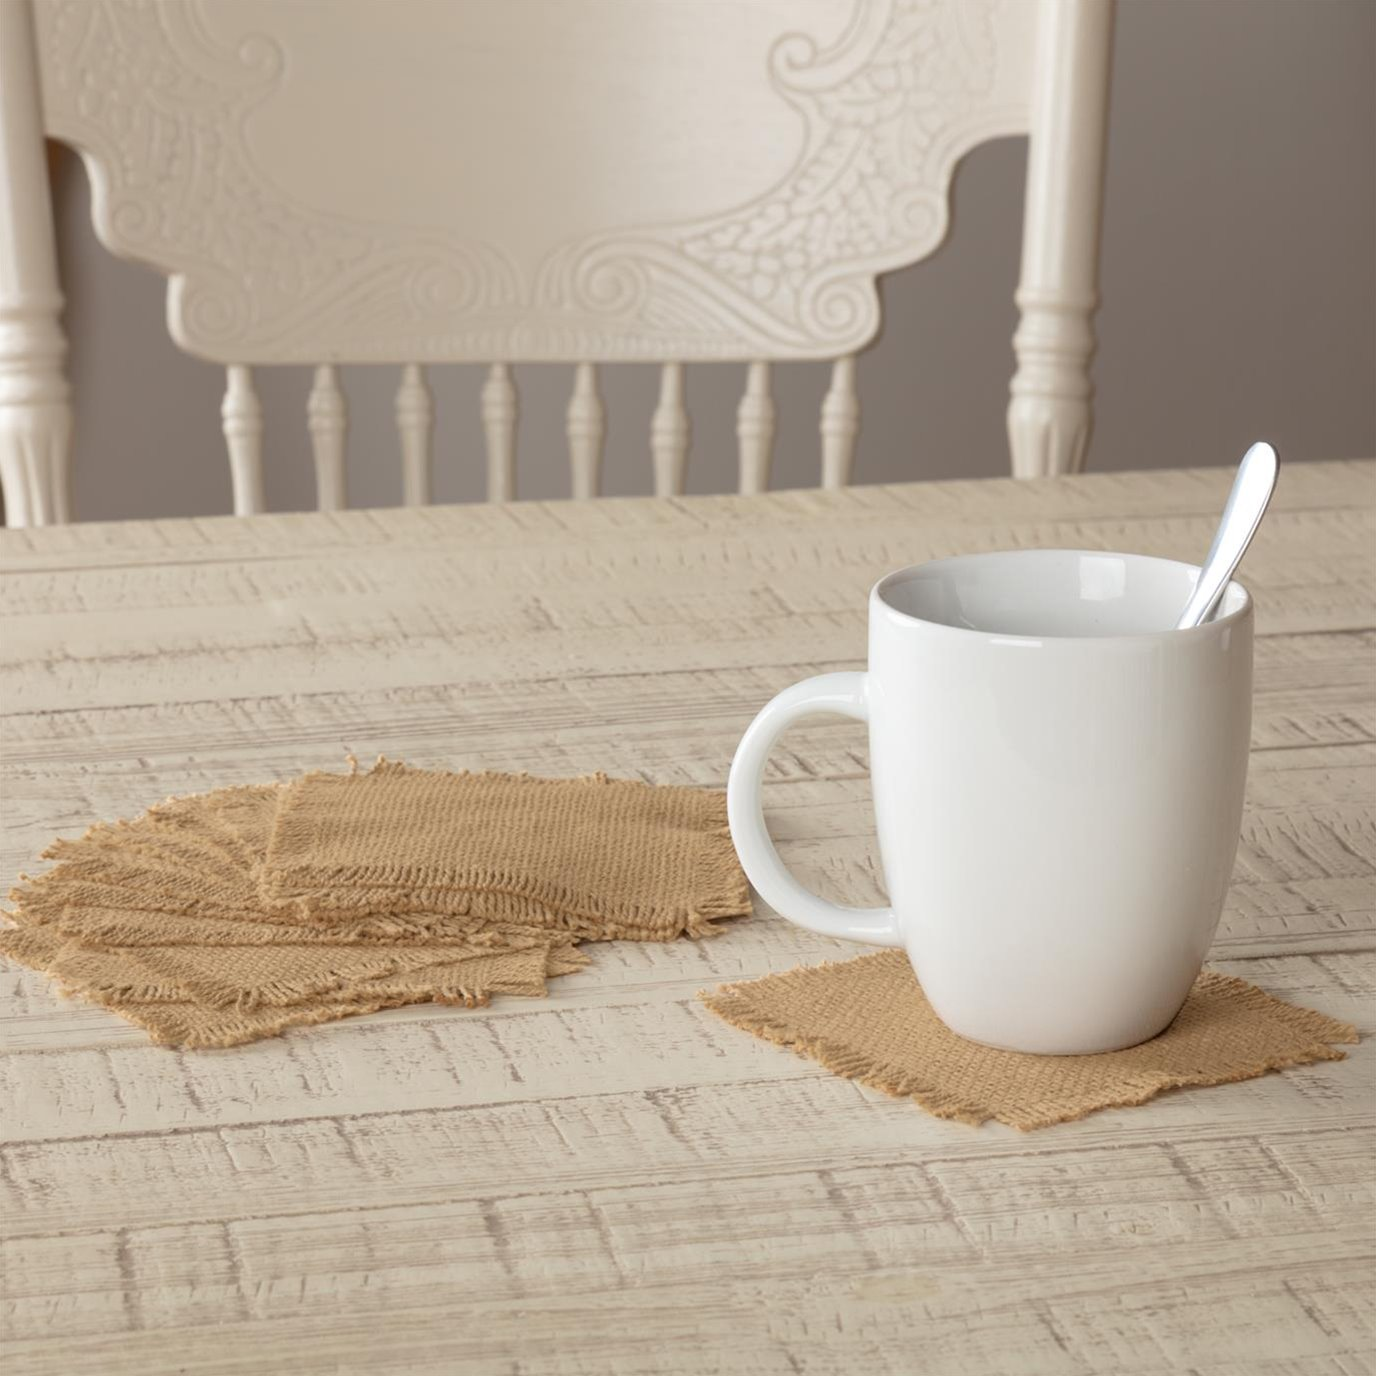 Burlap Natural Coaster Set of 12 Fringed 4x4